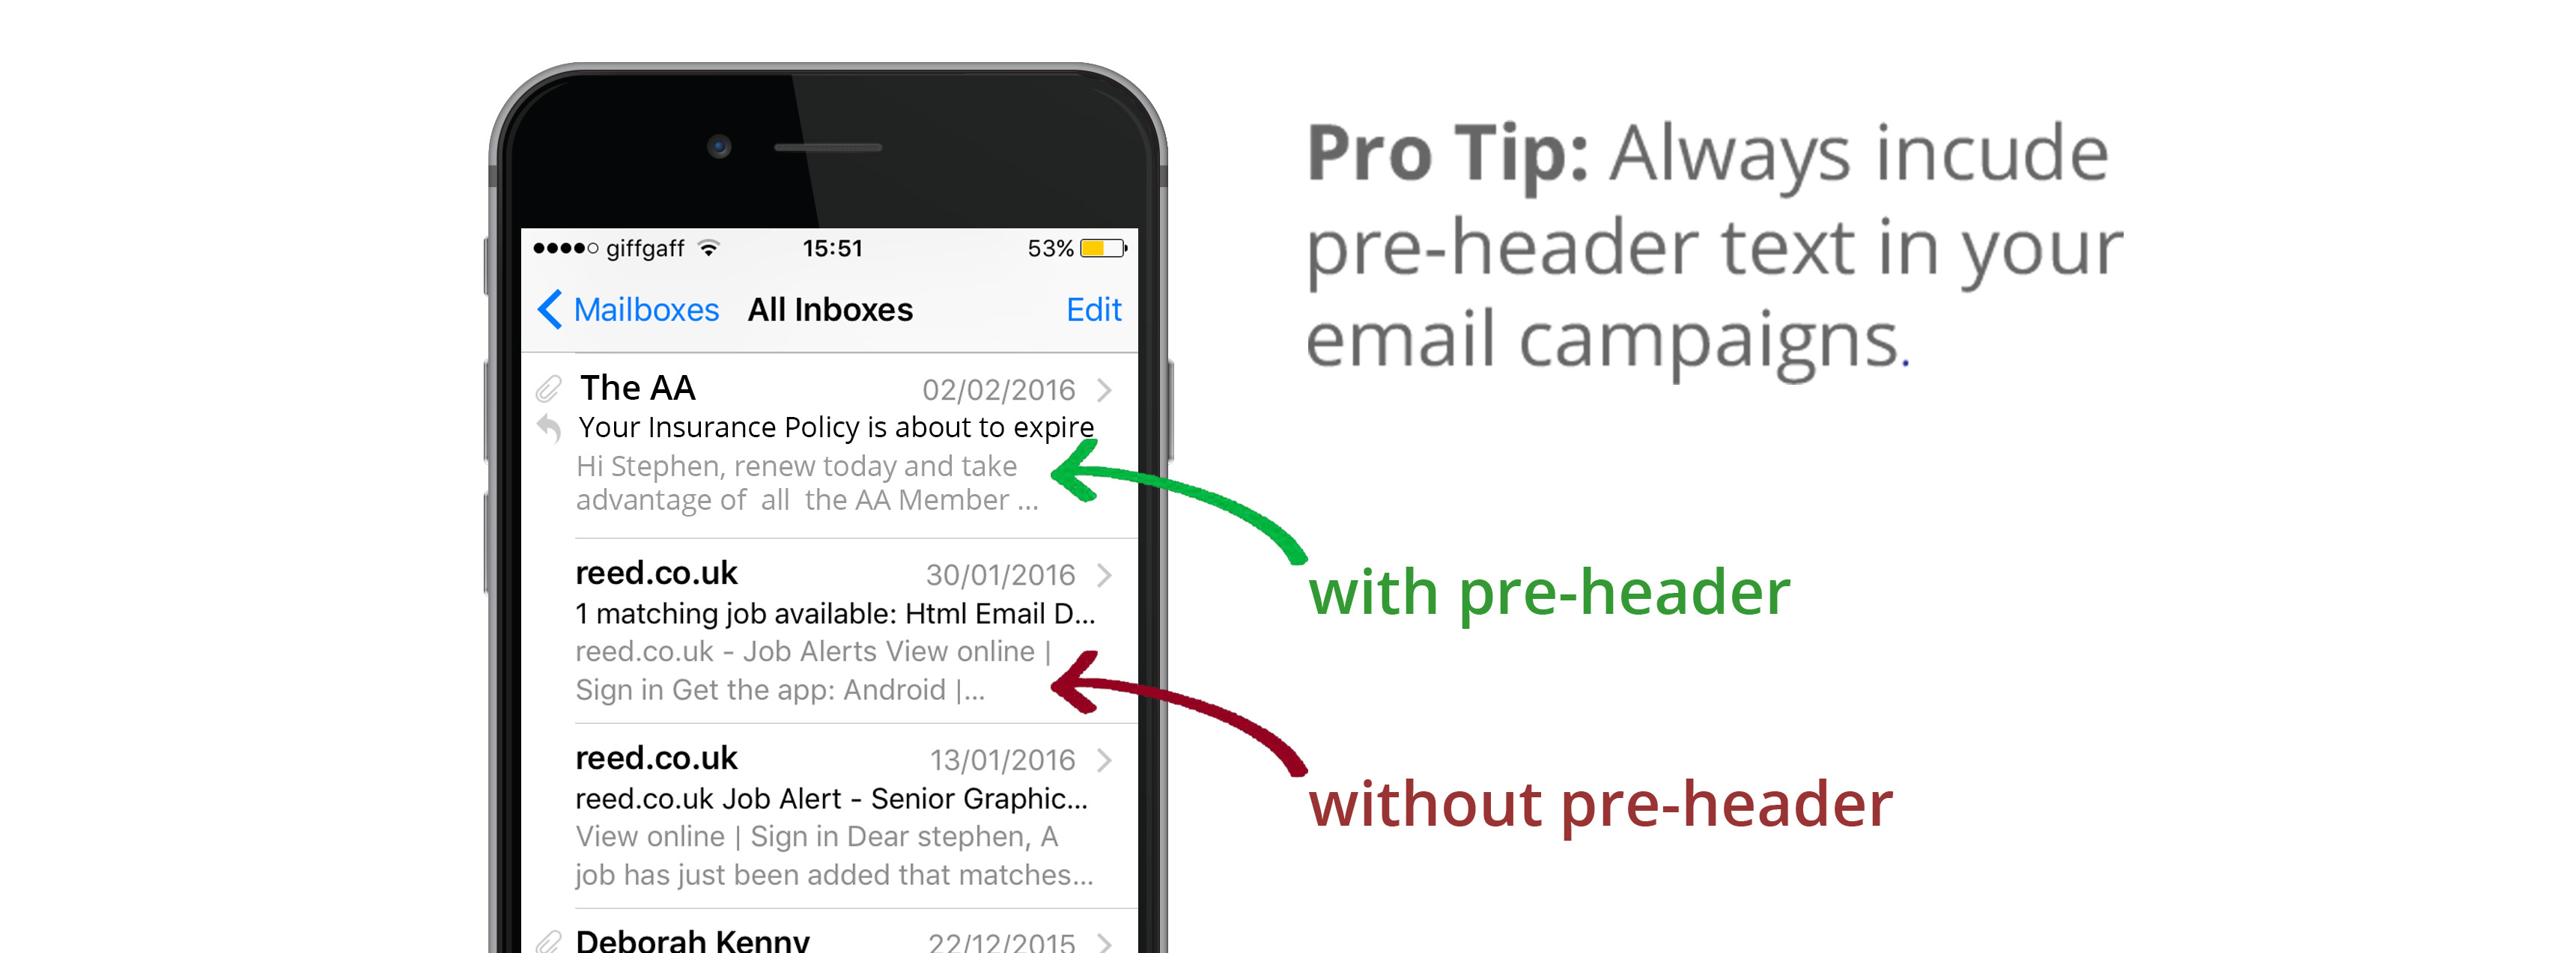 Use pre-header text in your email campaigns